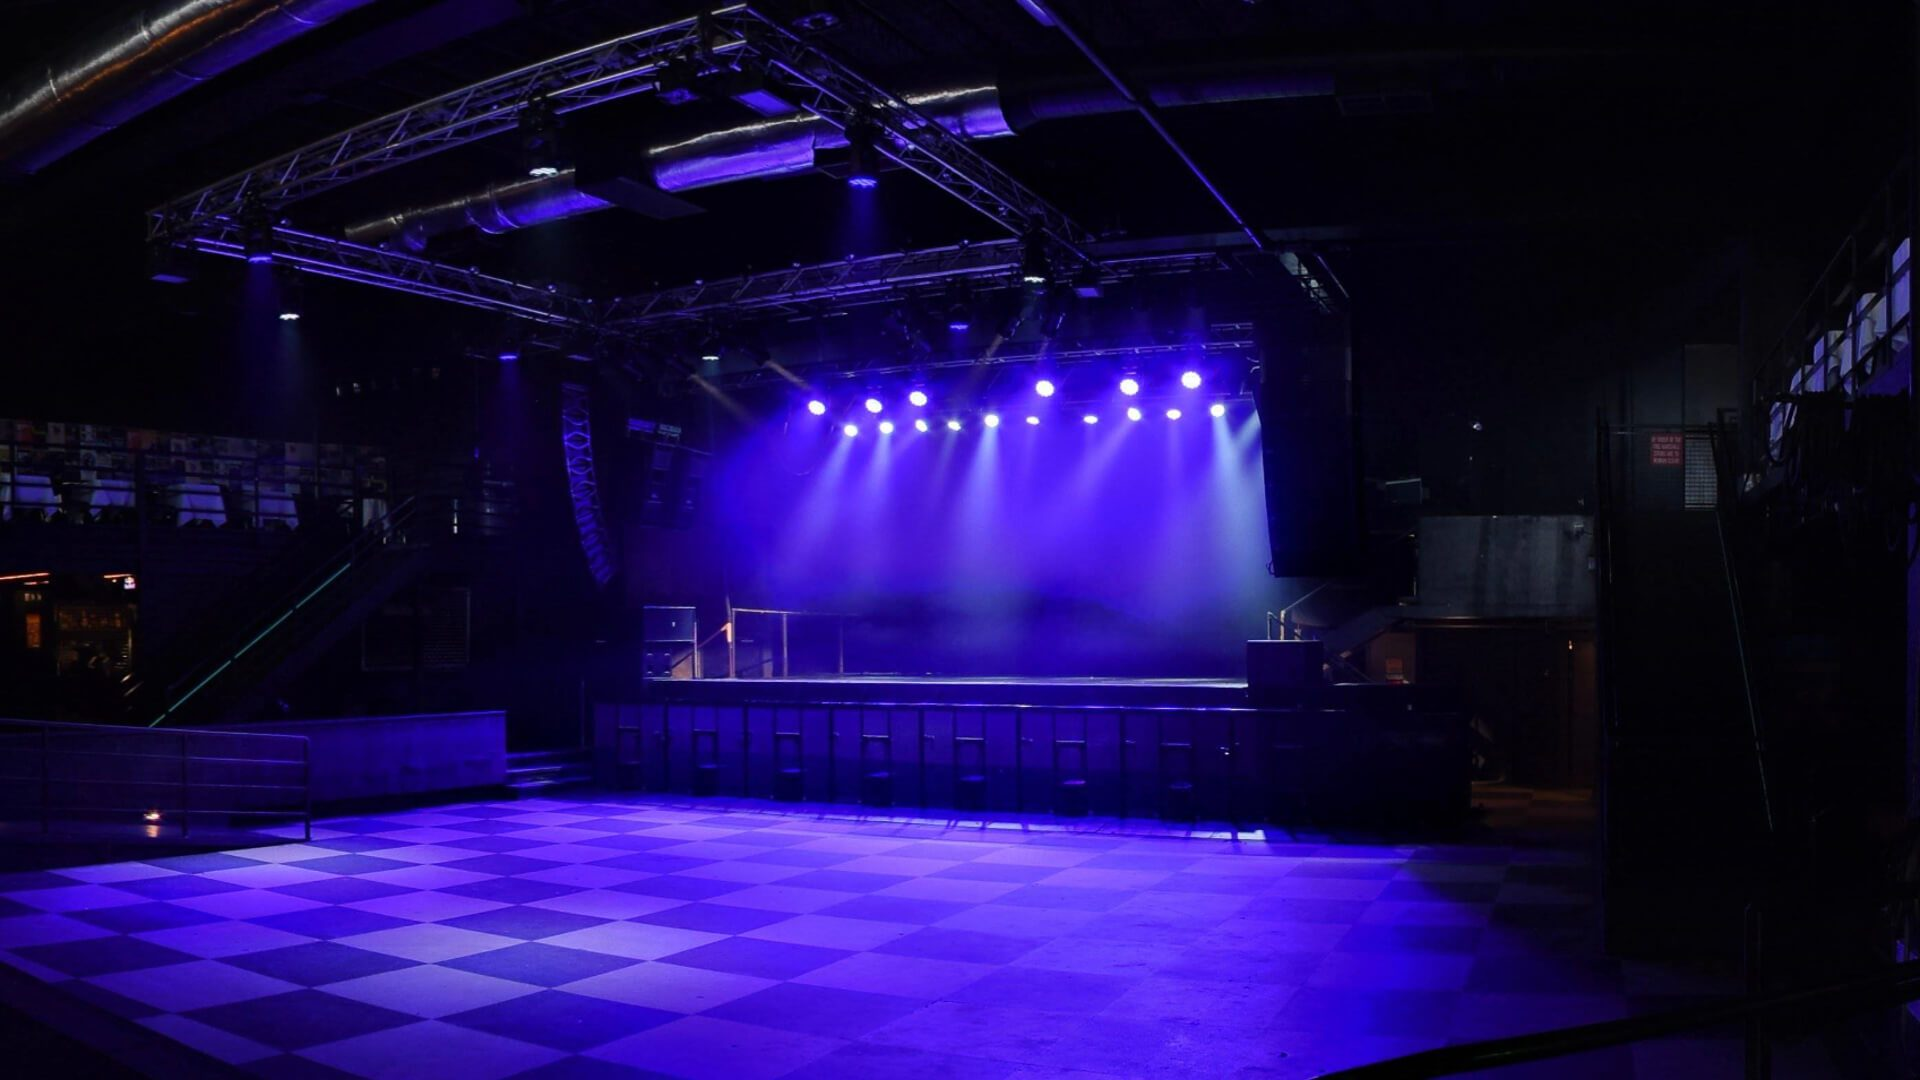 First Avenue stage in Minneapolis, MN